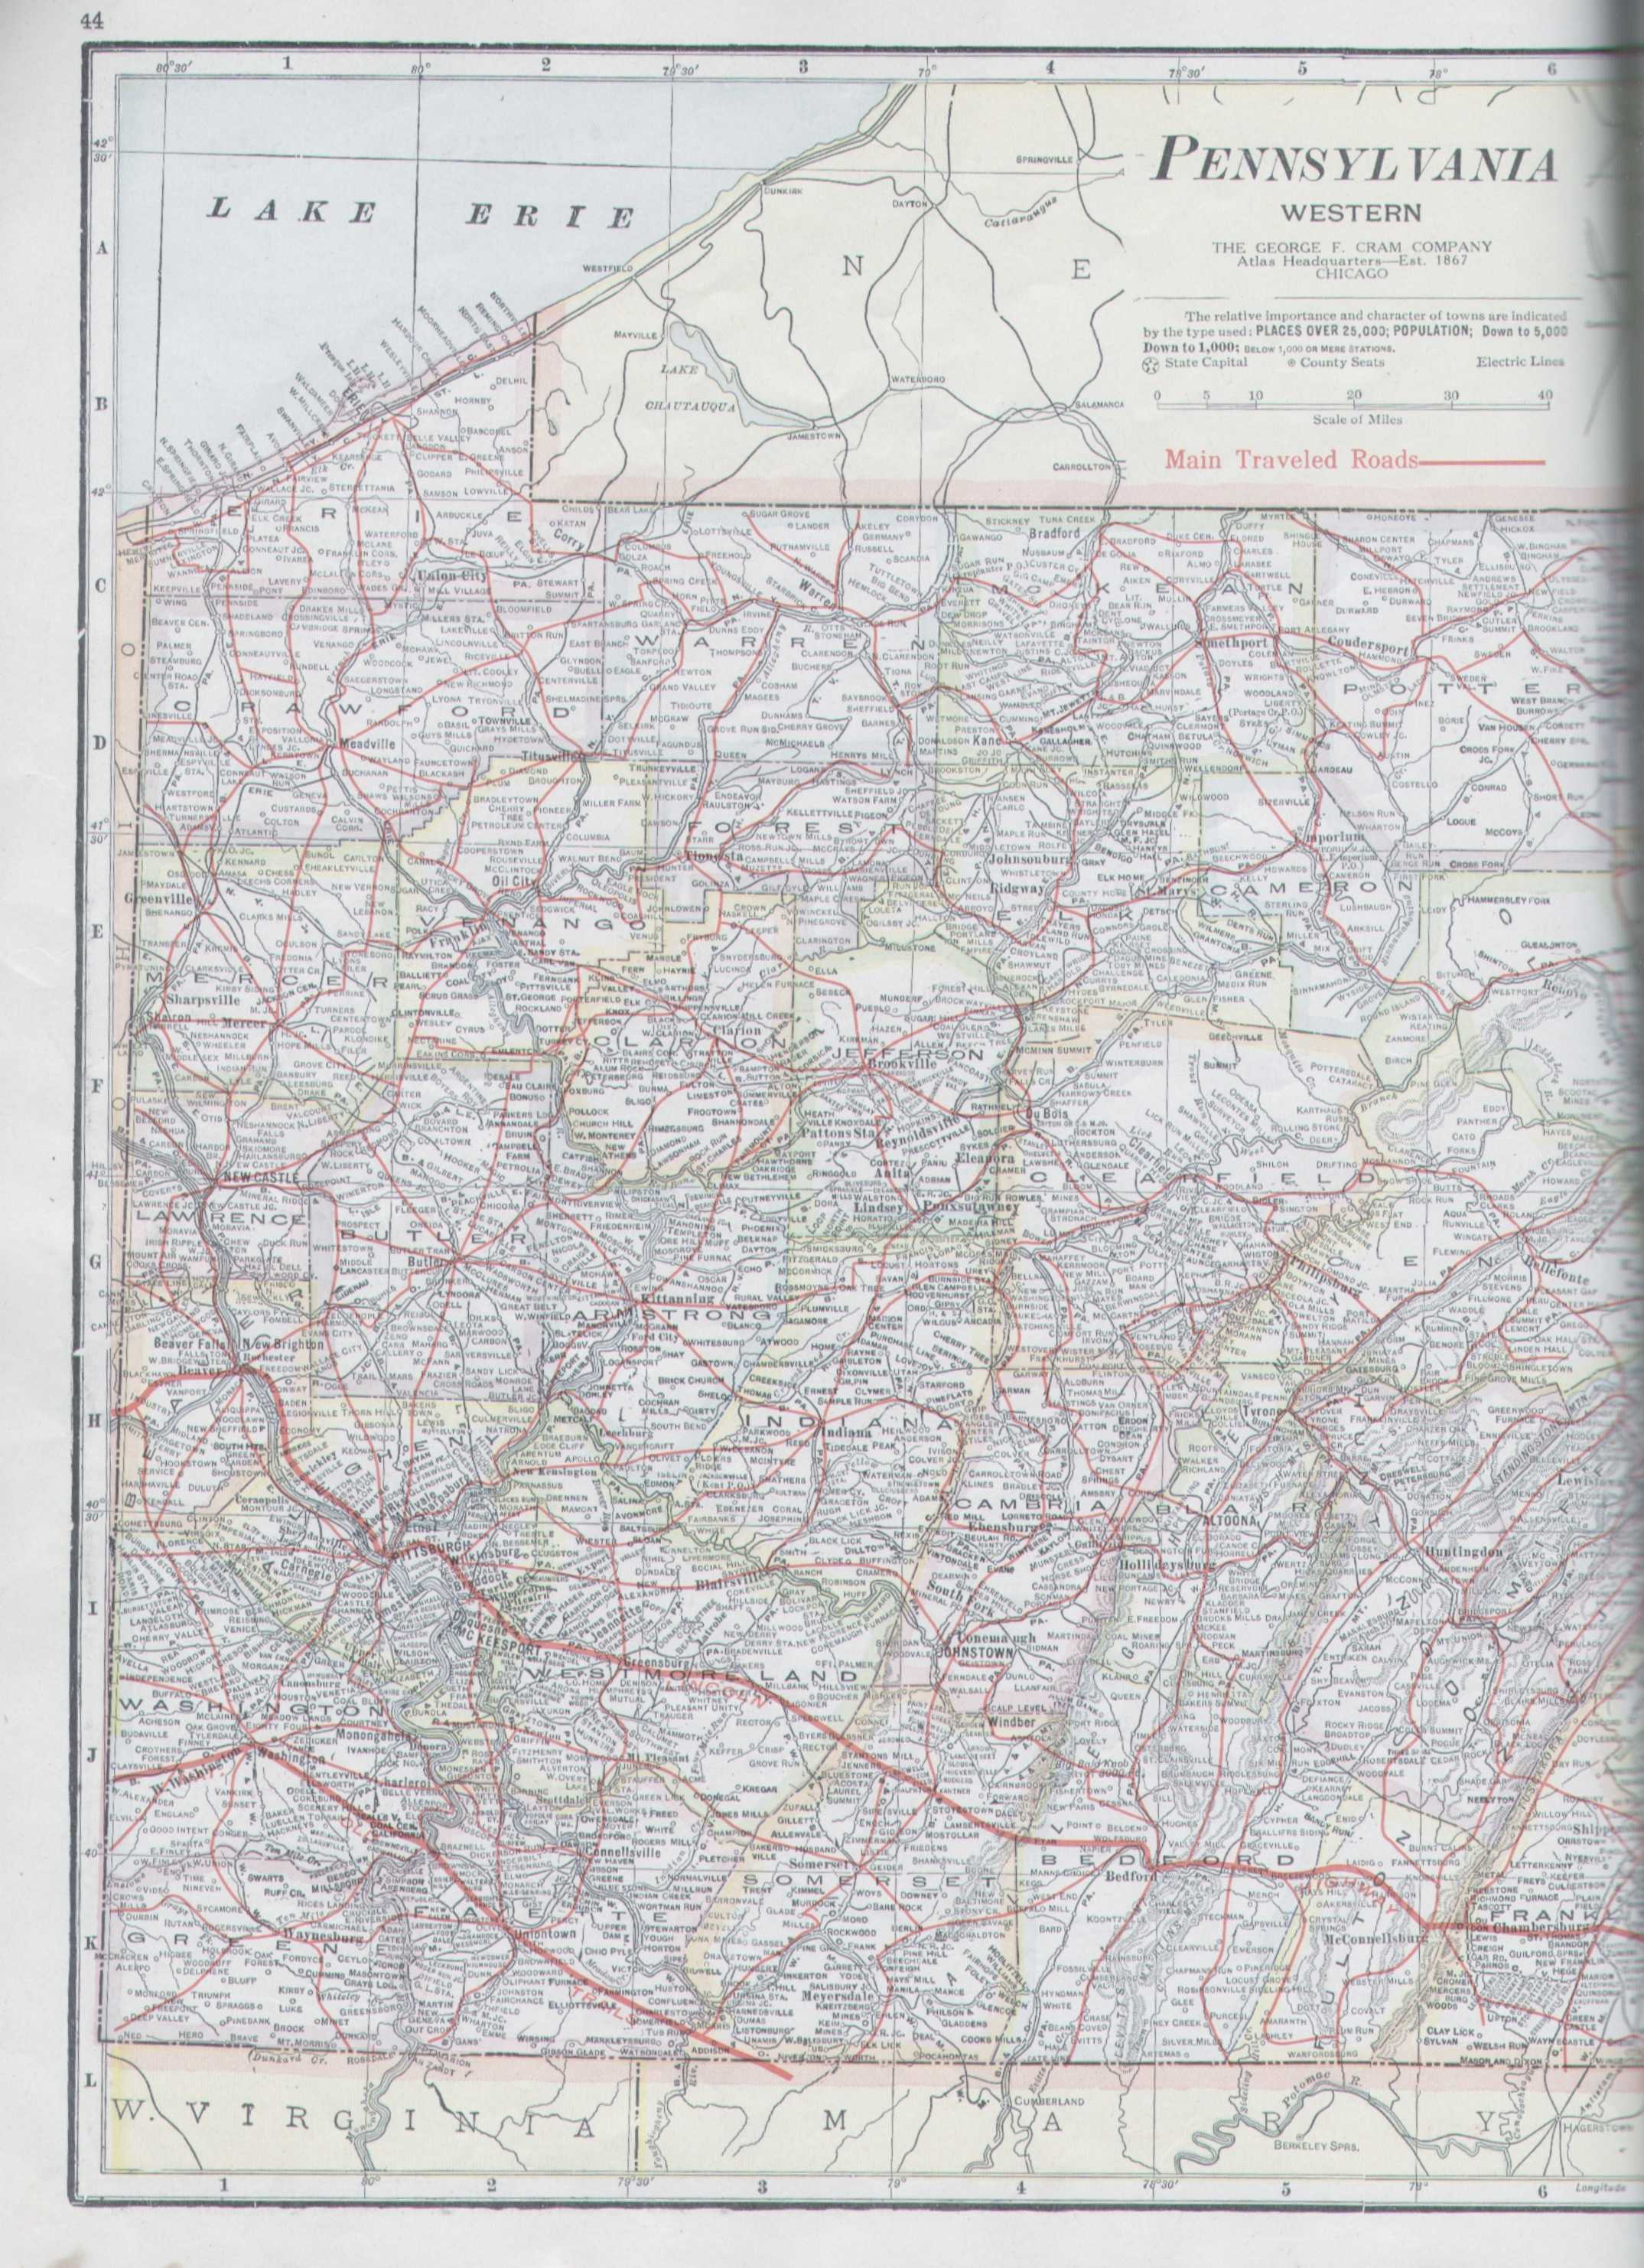 1921 Good Roads Atlas Of The United States The George F Cram Co Chicago This Undated 100 Page Road Atlas And Gazetteer Has 1920 Census Data And Uses